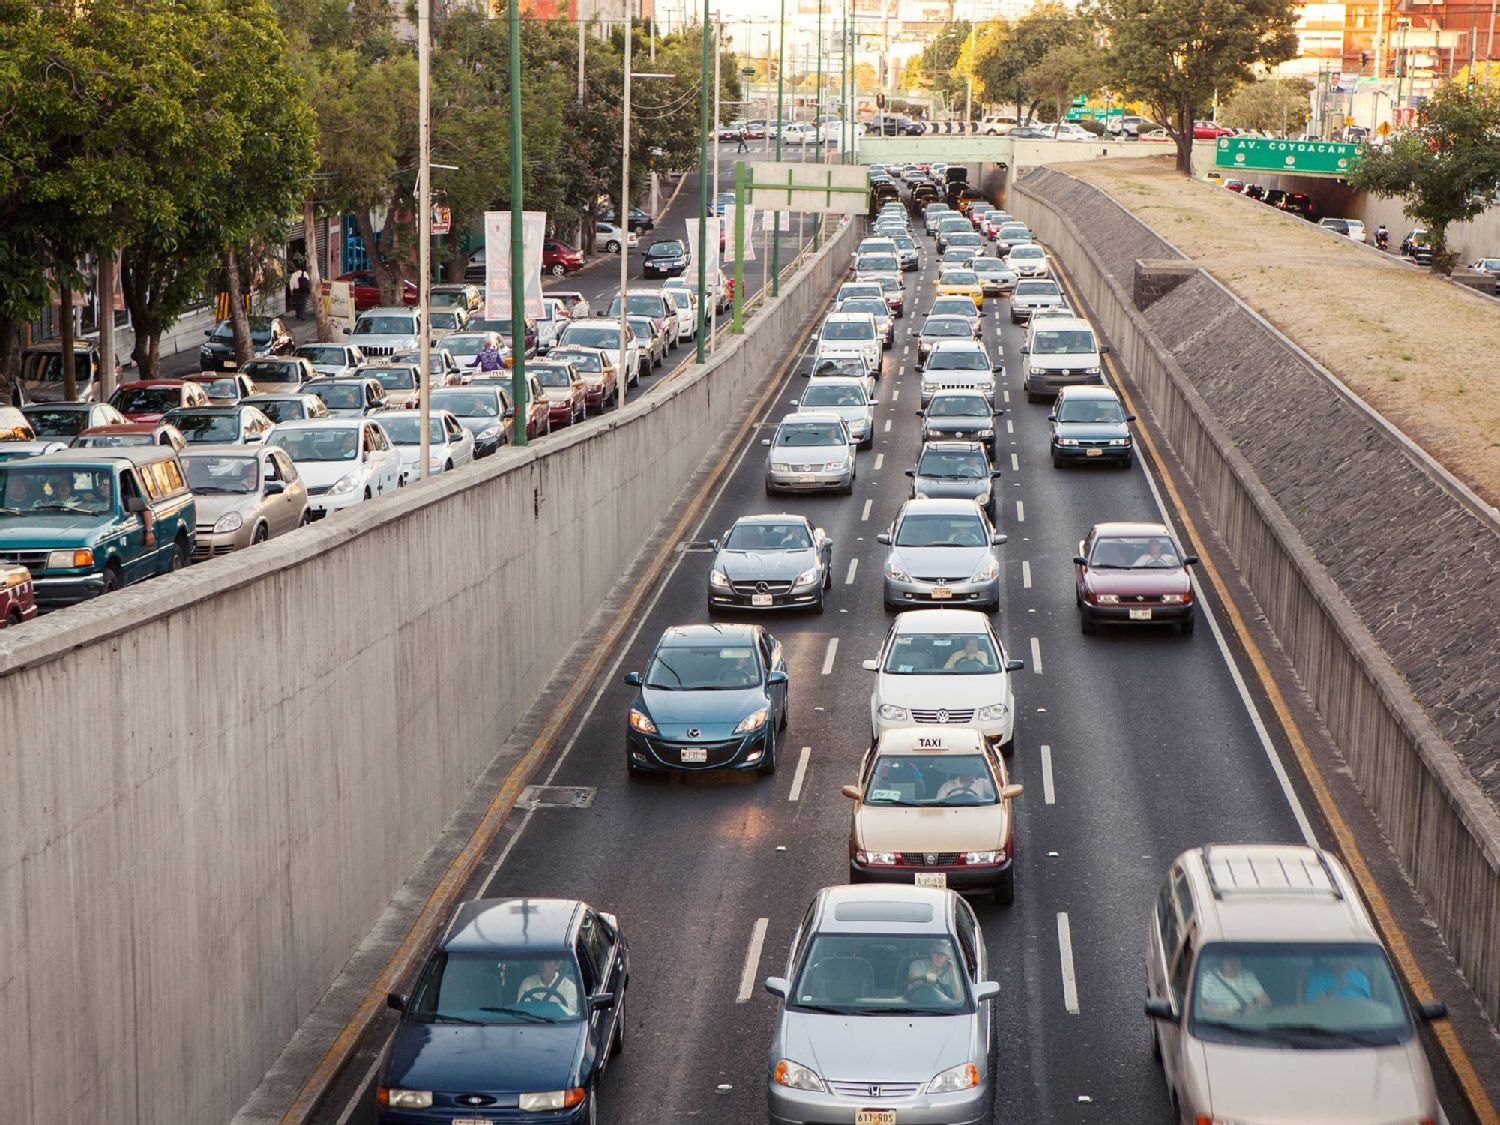 The heavy traffic in Mexico City is becoming a problem for the health of the inhabitants